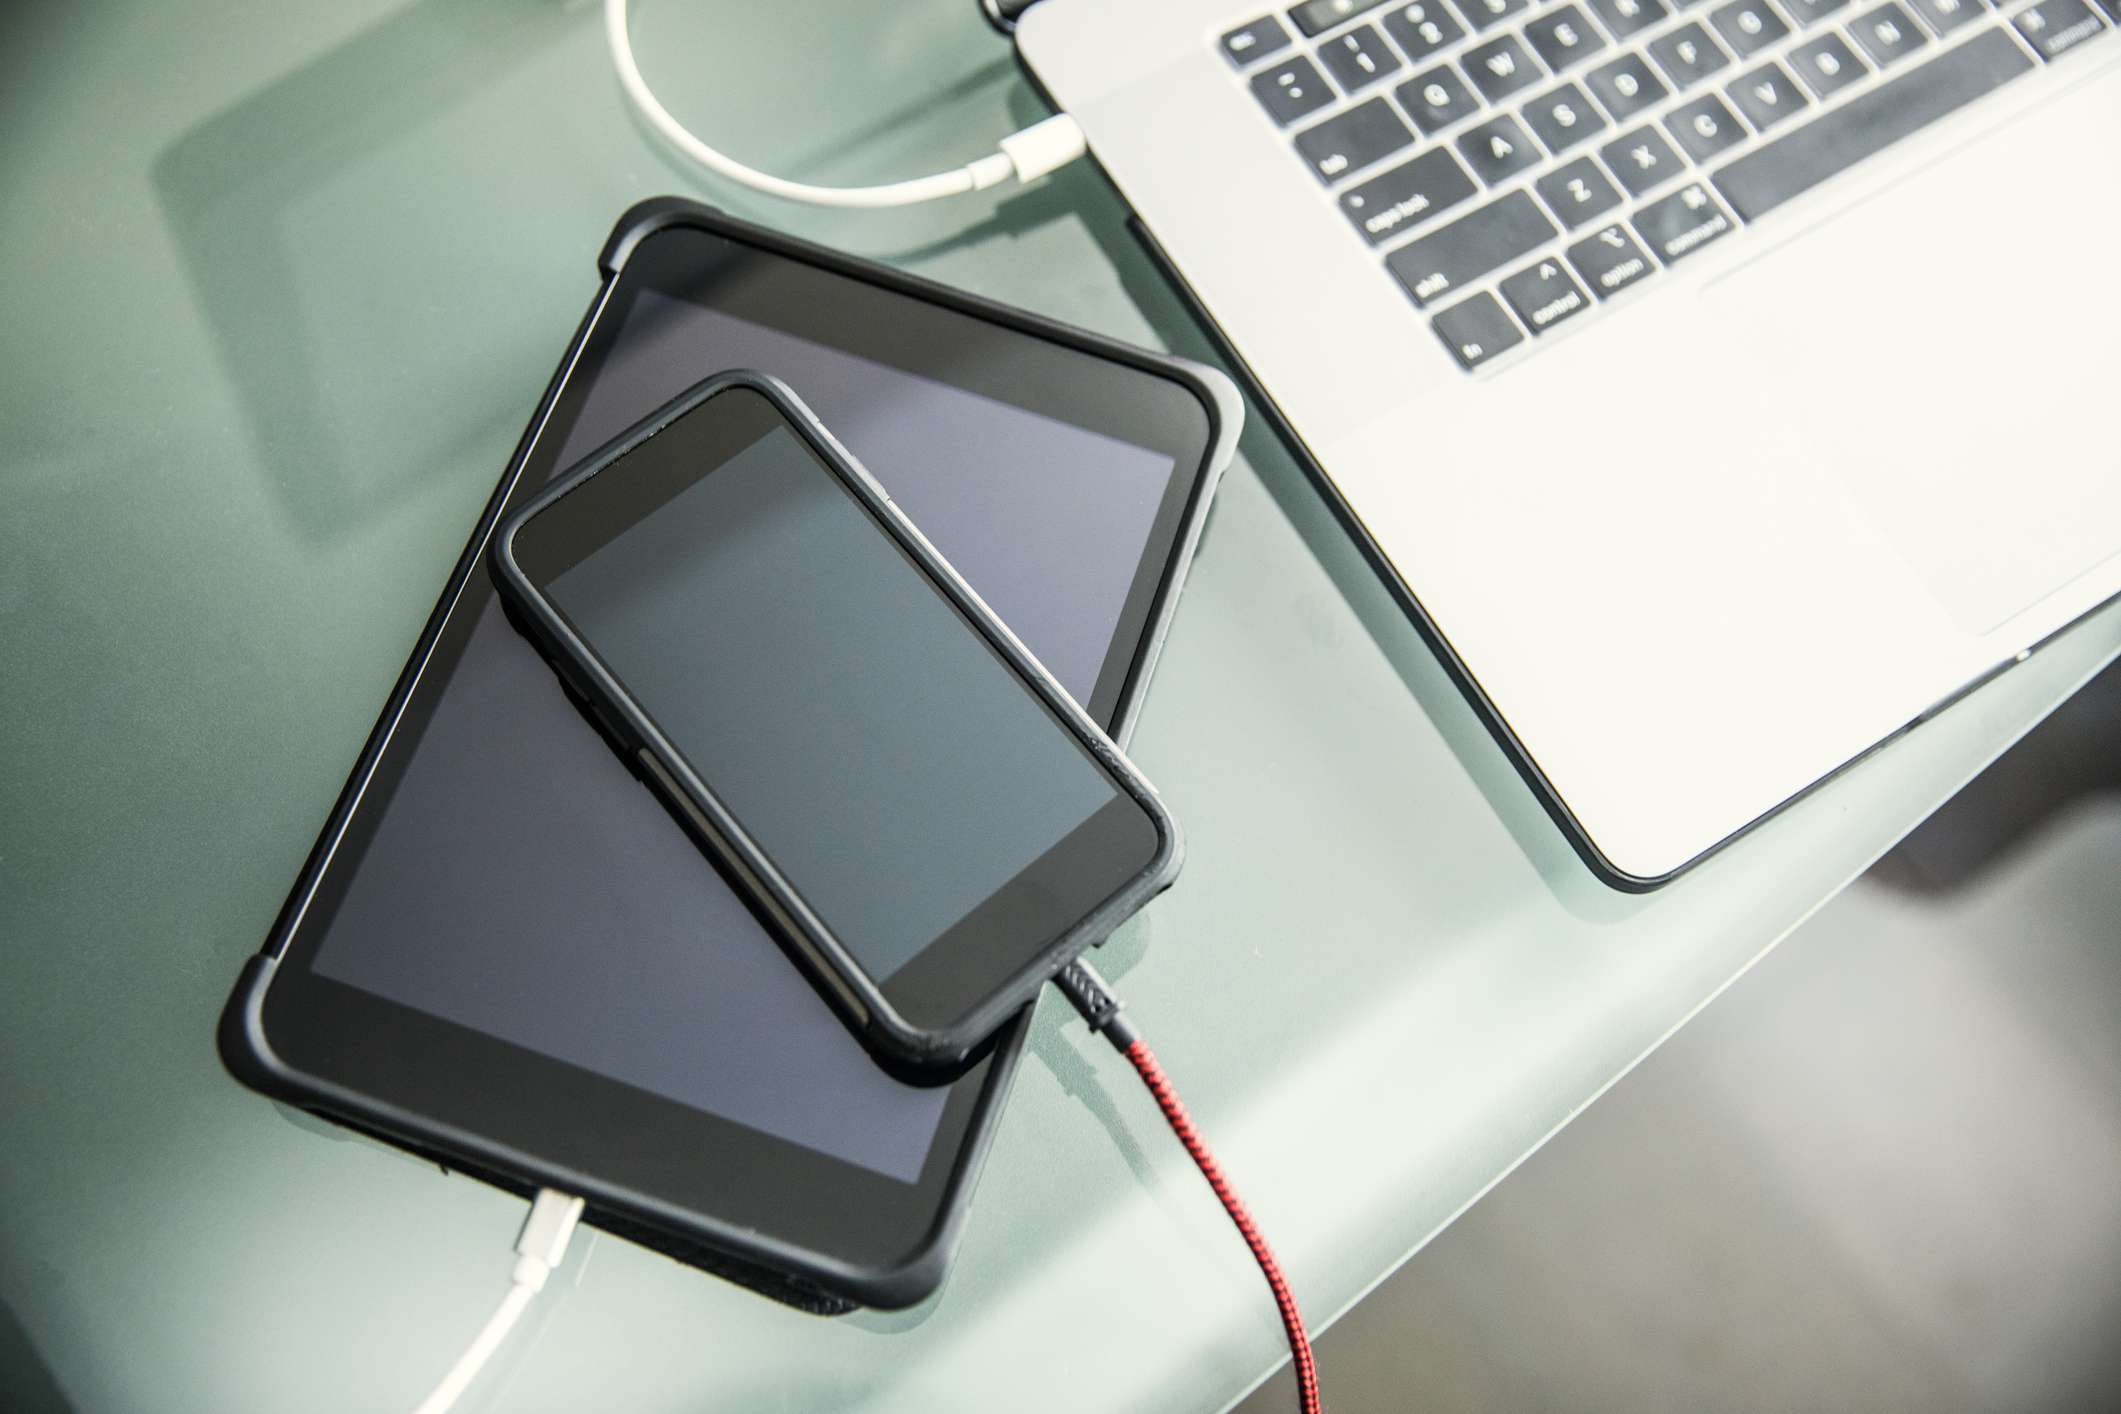 Mobile devices and laptop charging on office desk